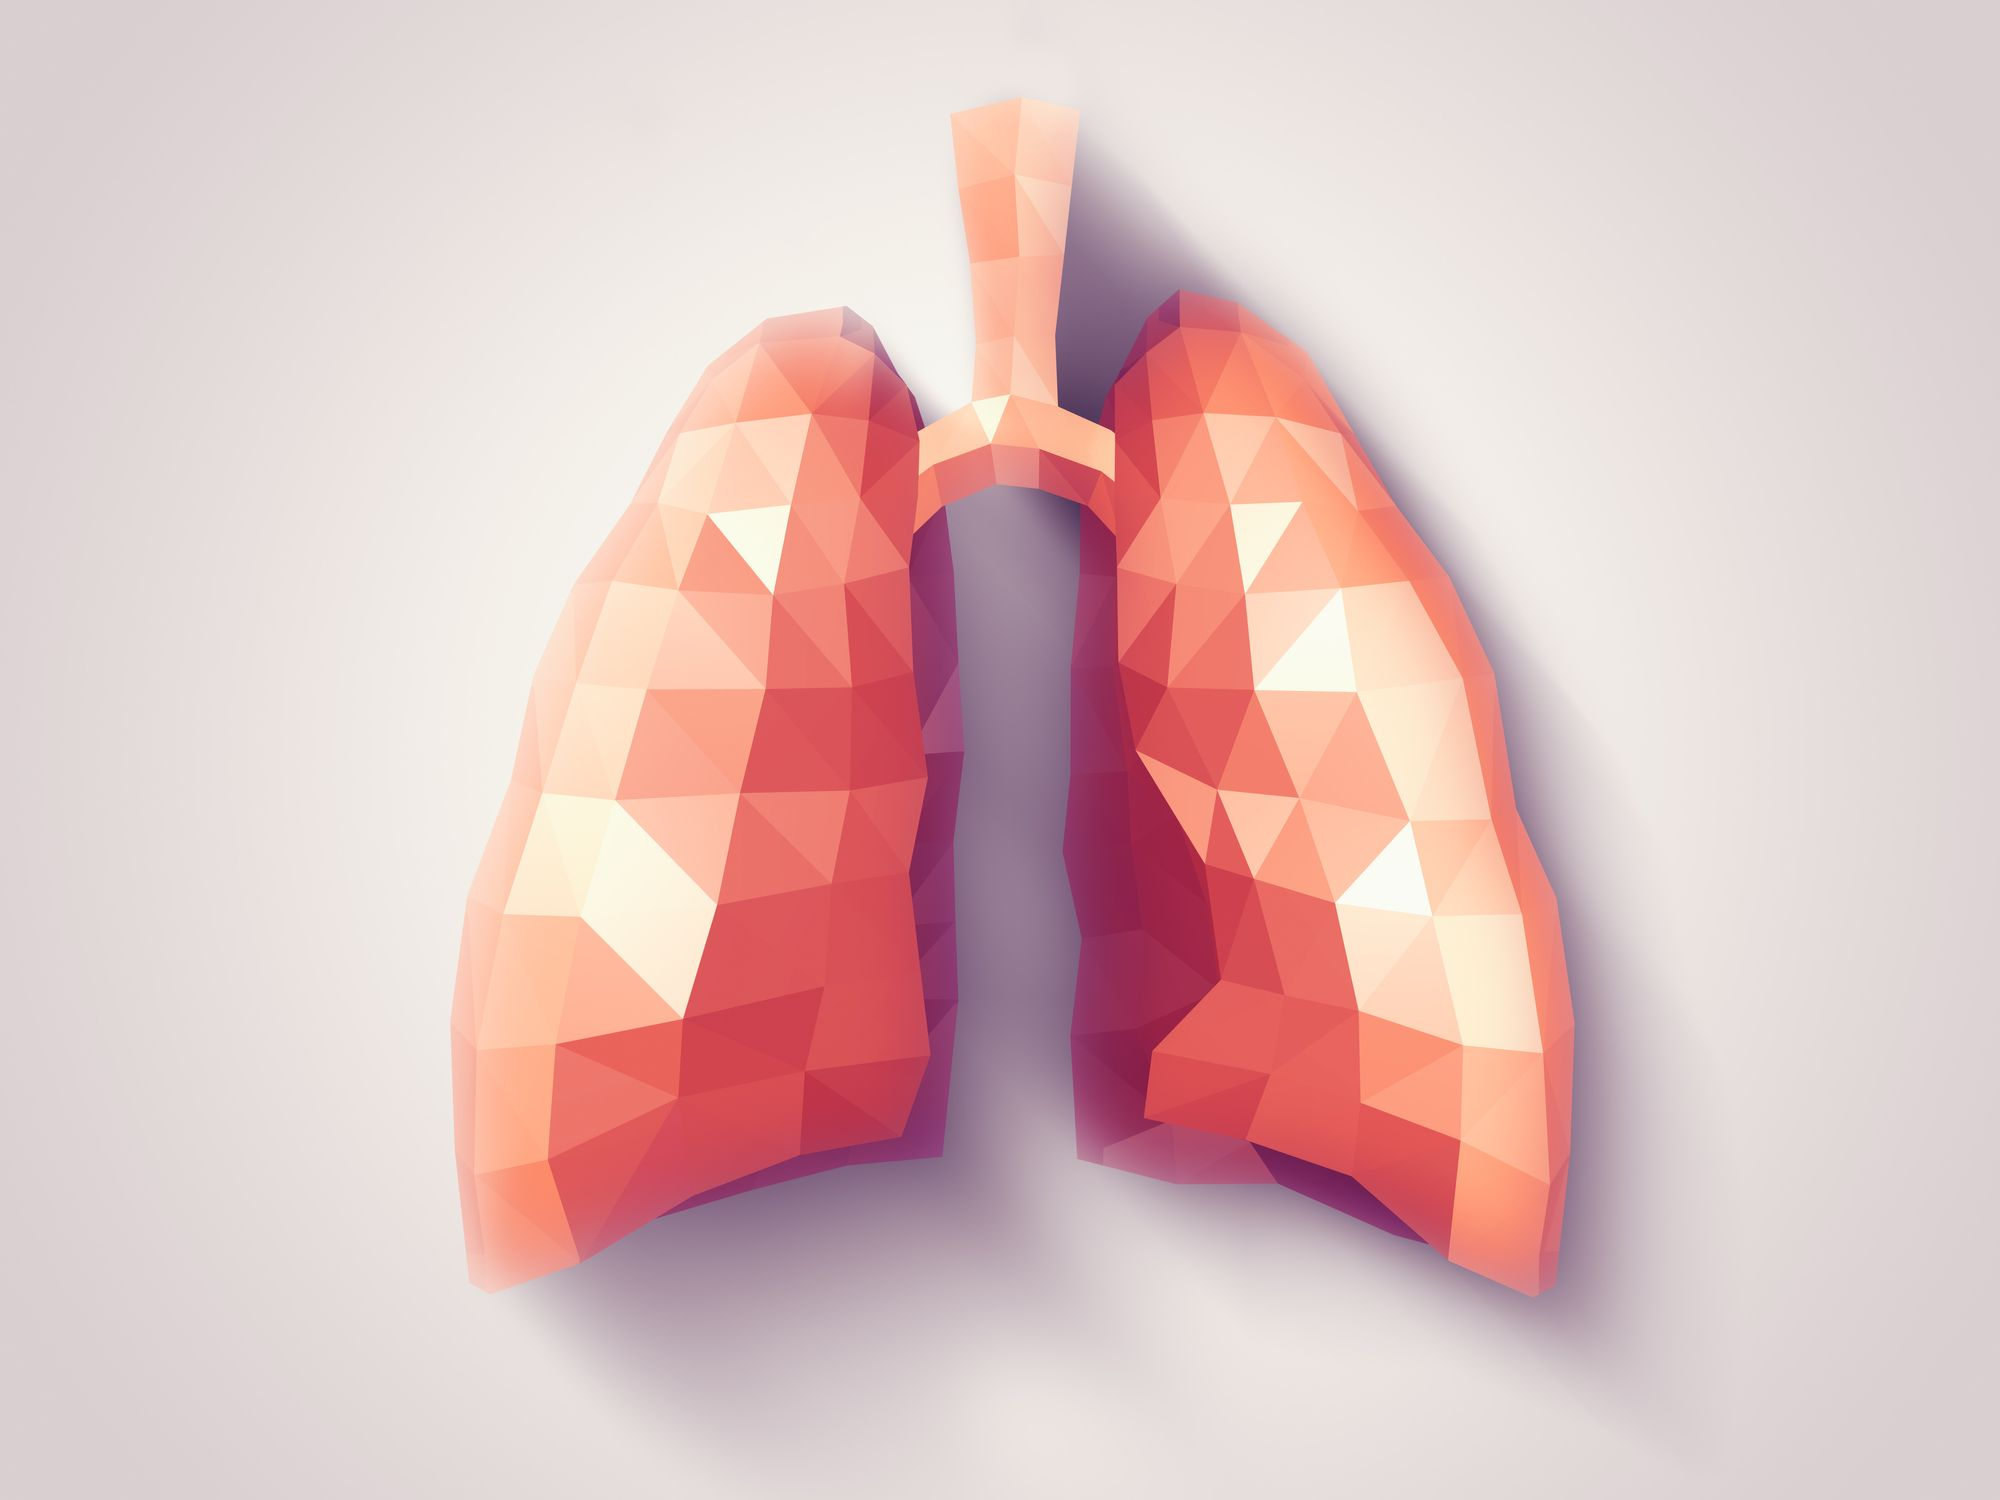 Lung Cancer Symptoms Even Non-Smokers Should Know - Signs of